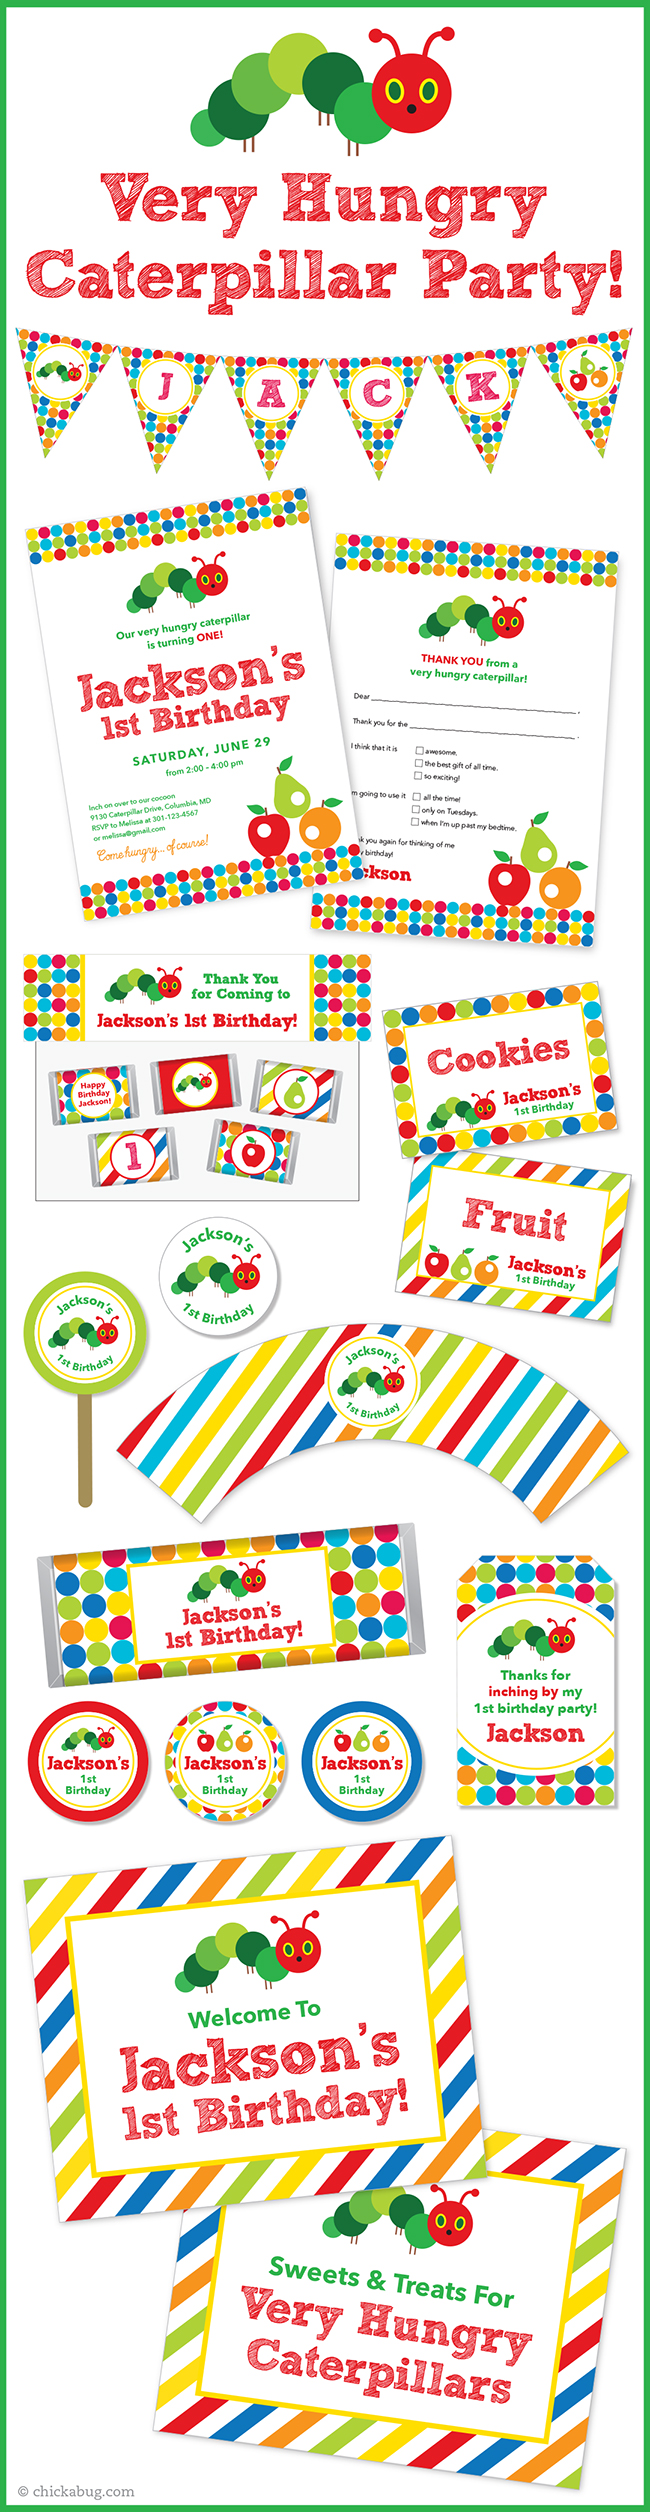 Very Hungry Caterpillar theme party! Invitations, water labels, stickers, DIY party printables and lots more from Chickabug.com